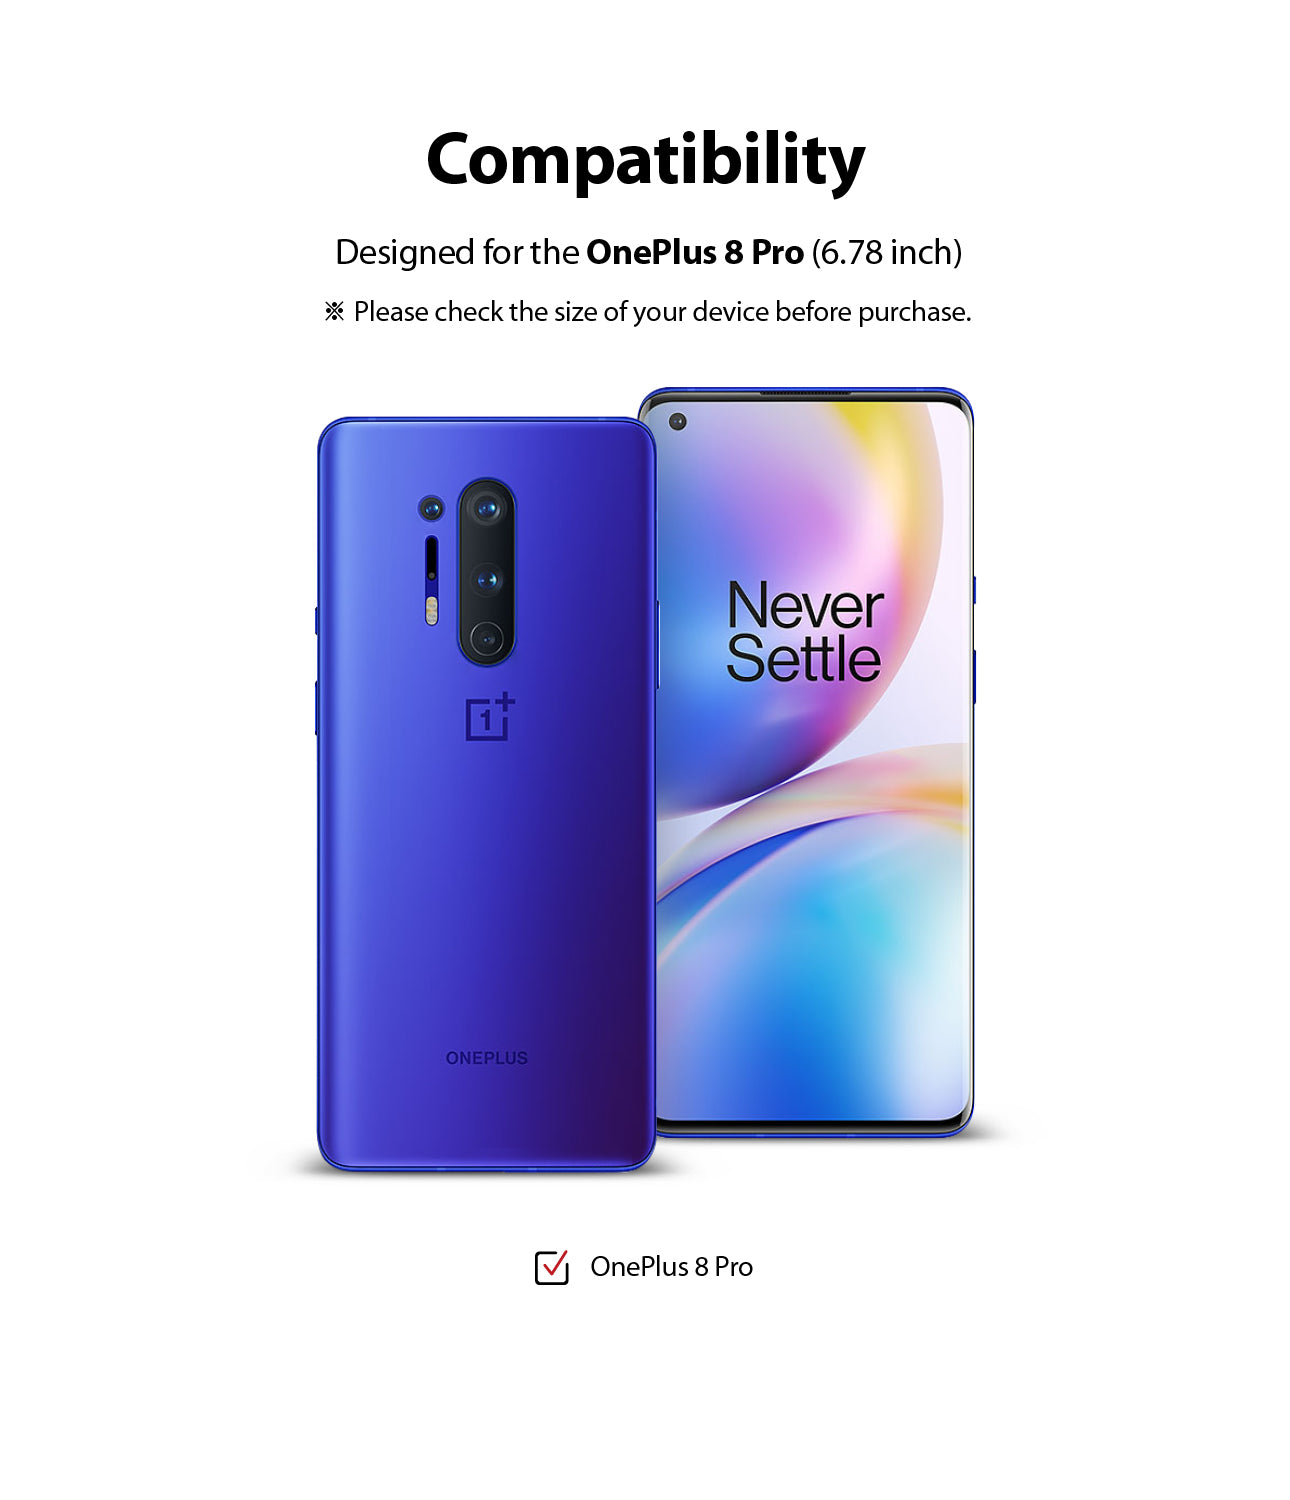 compatible with oneplus 8 pro